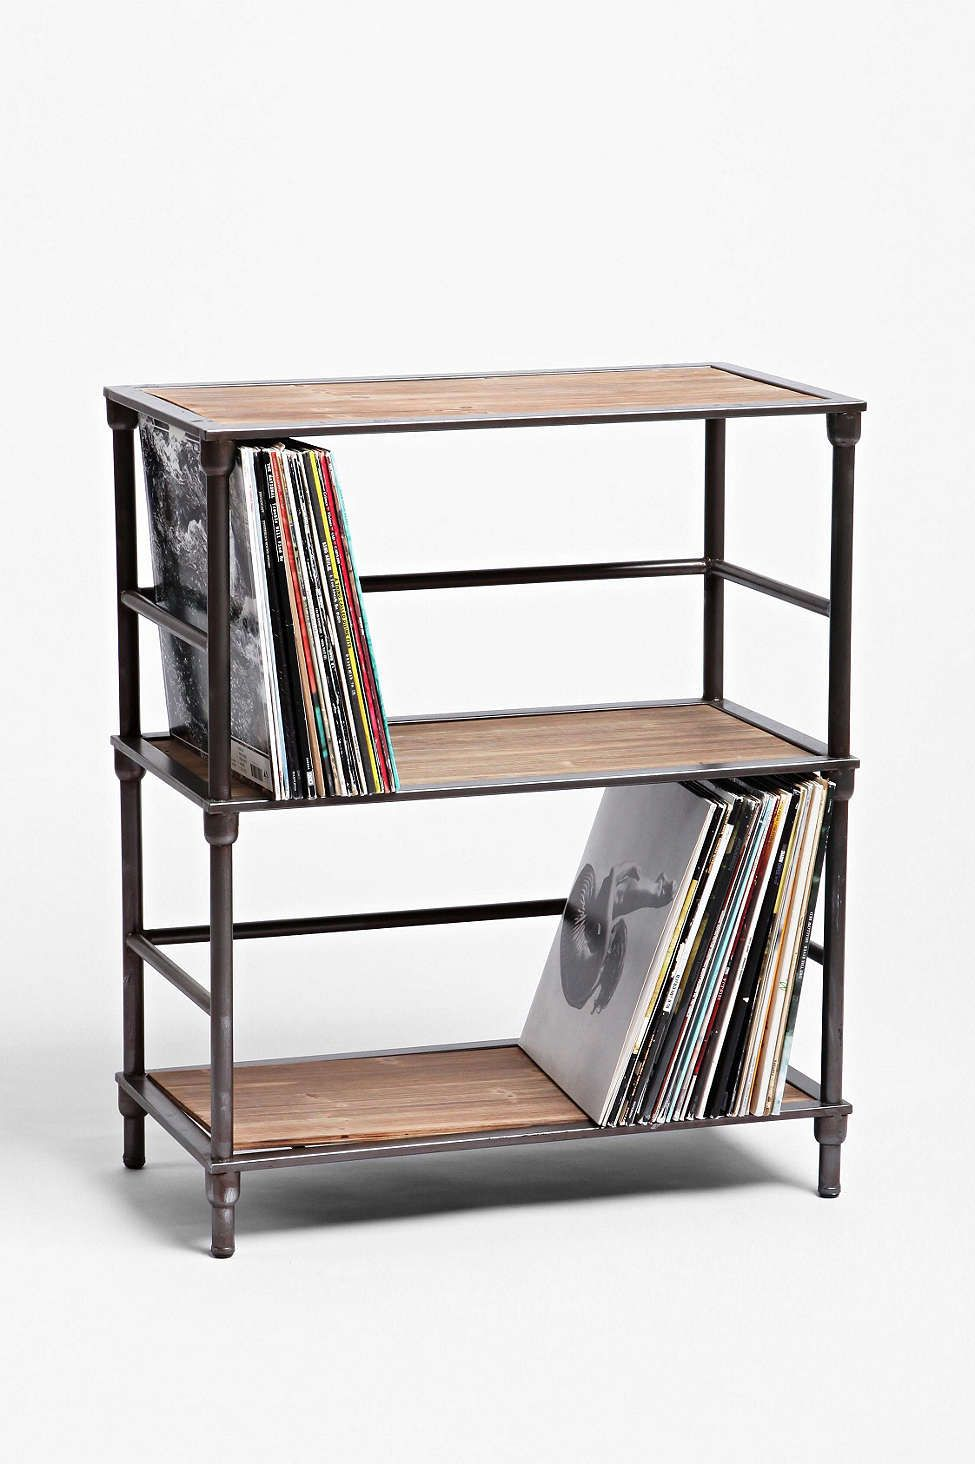 By The Kitchen Storage? Vinyl Storage Shelf   $189 Urban Outfitters  #uponcamous #uocontest